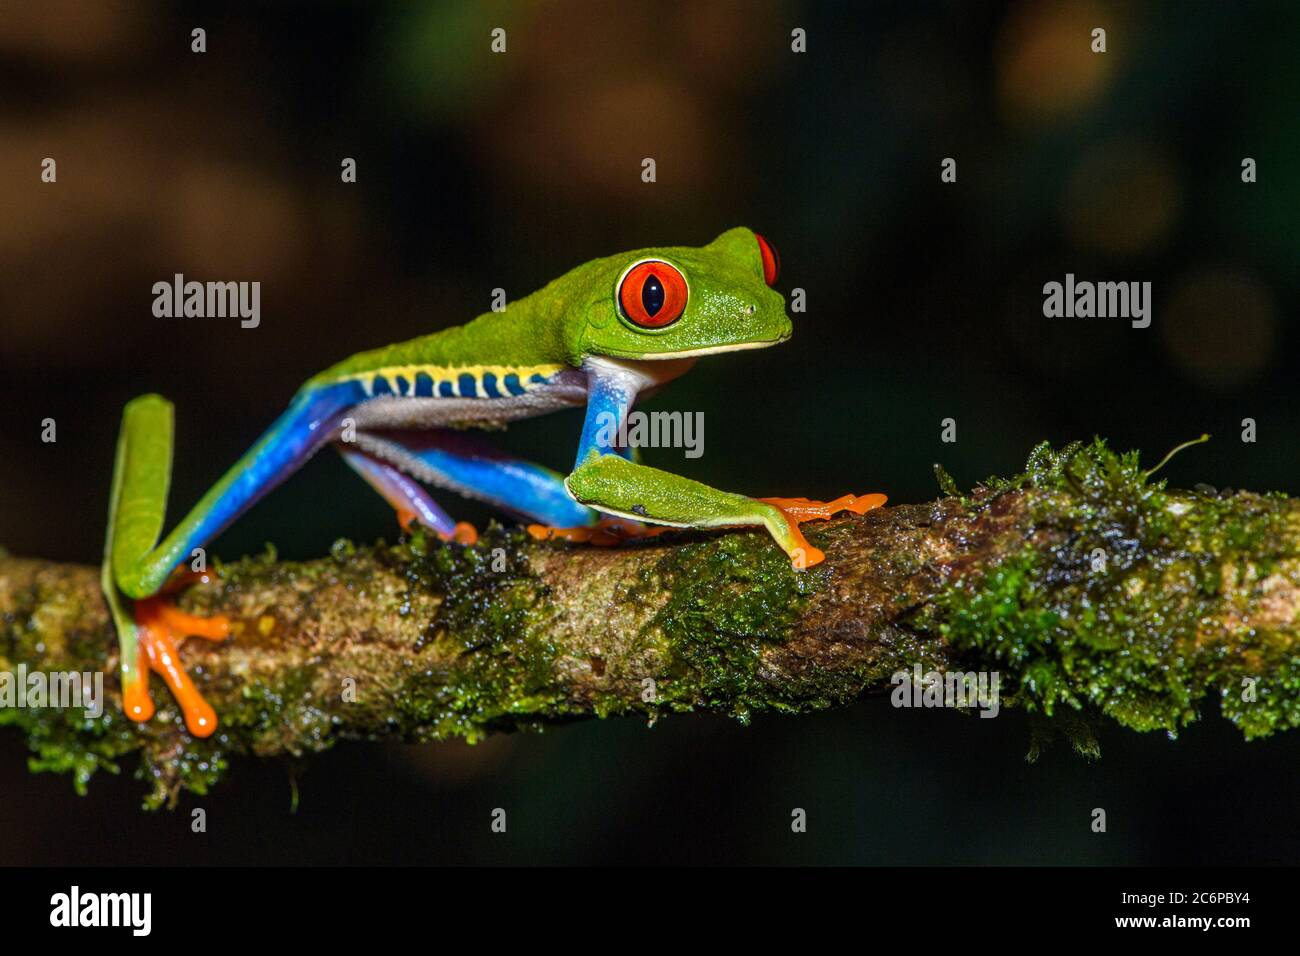 Red-Eyed Tree Frog (Agalychnis callidryas), Frogs Heaven, Limon, Costa Rica Stock Photo